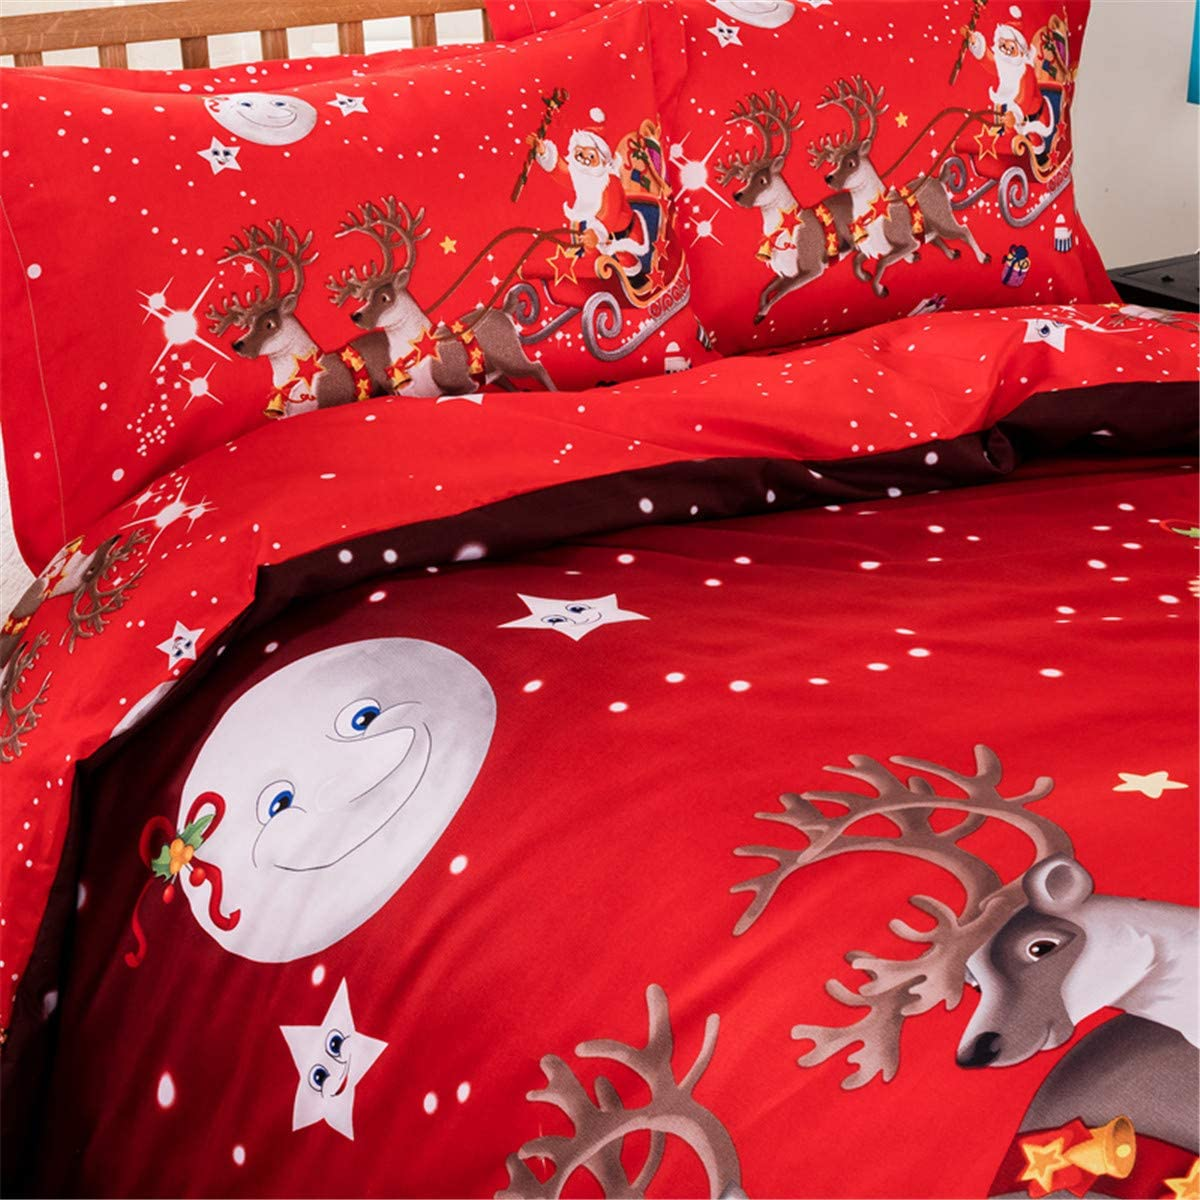 Christmas Bedding Duvet Cover Queen Reversible Santa Claus Deer Printed Duvet Cover with Zipper Closure for Kid Teens Adults Soft Lightweight Microfiber Christmas Bedding